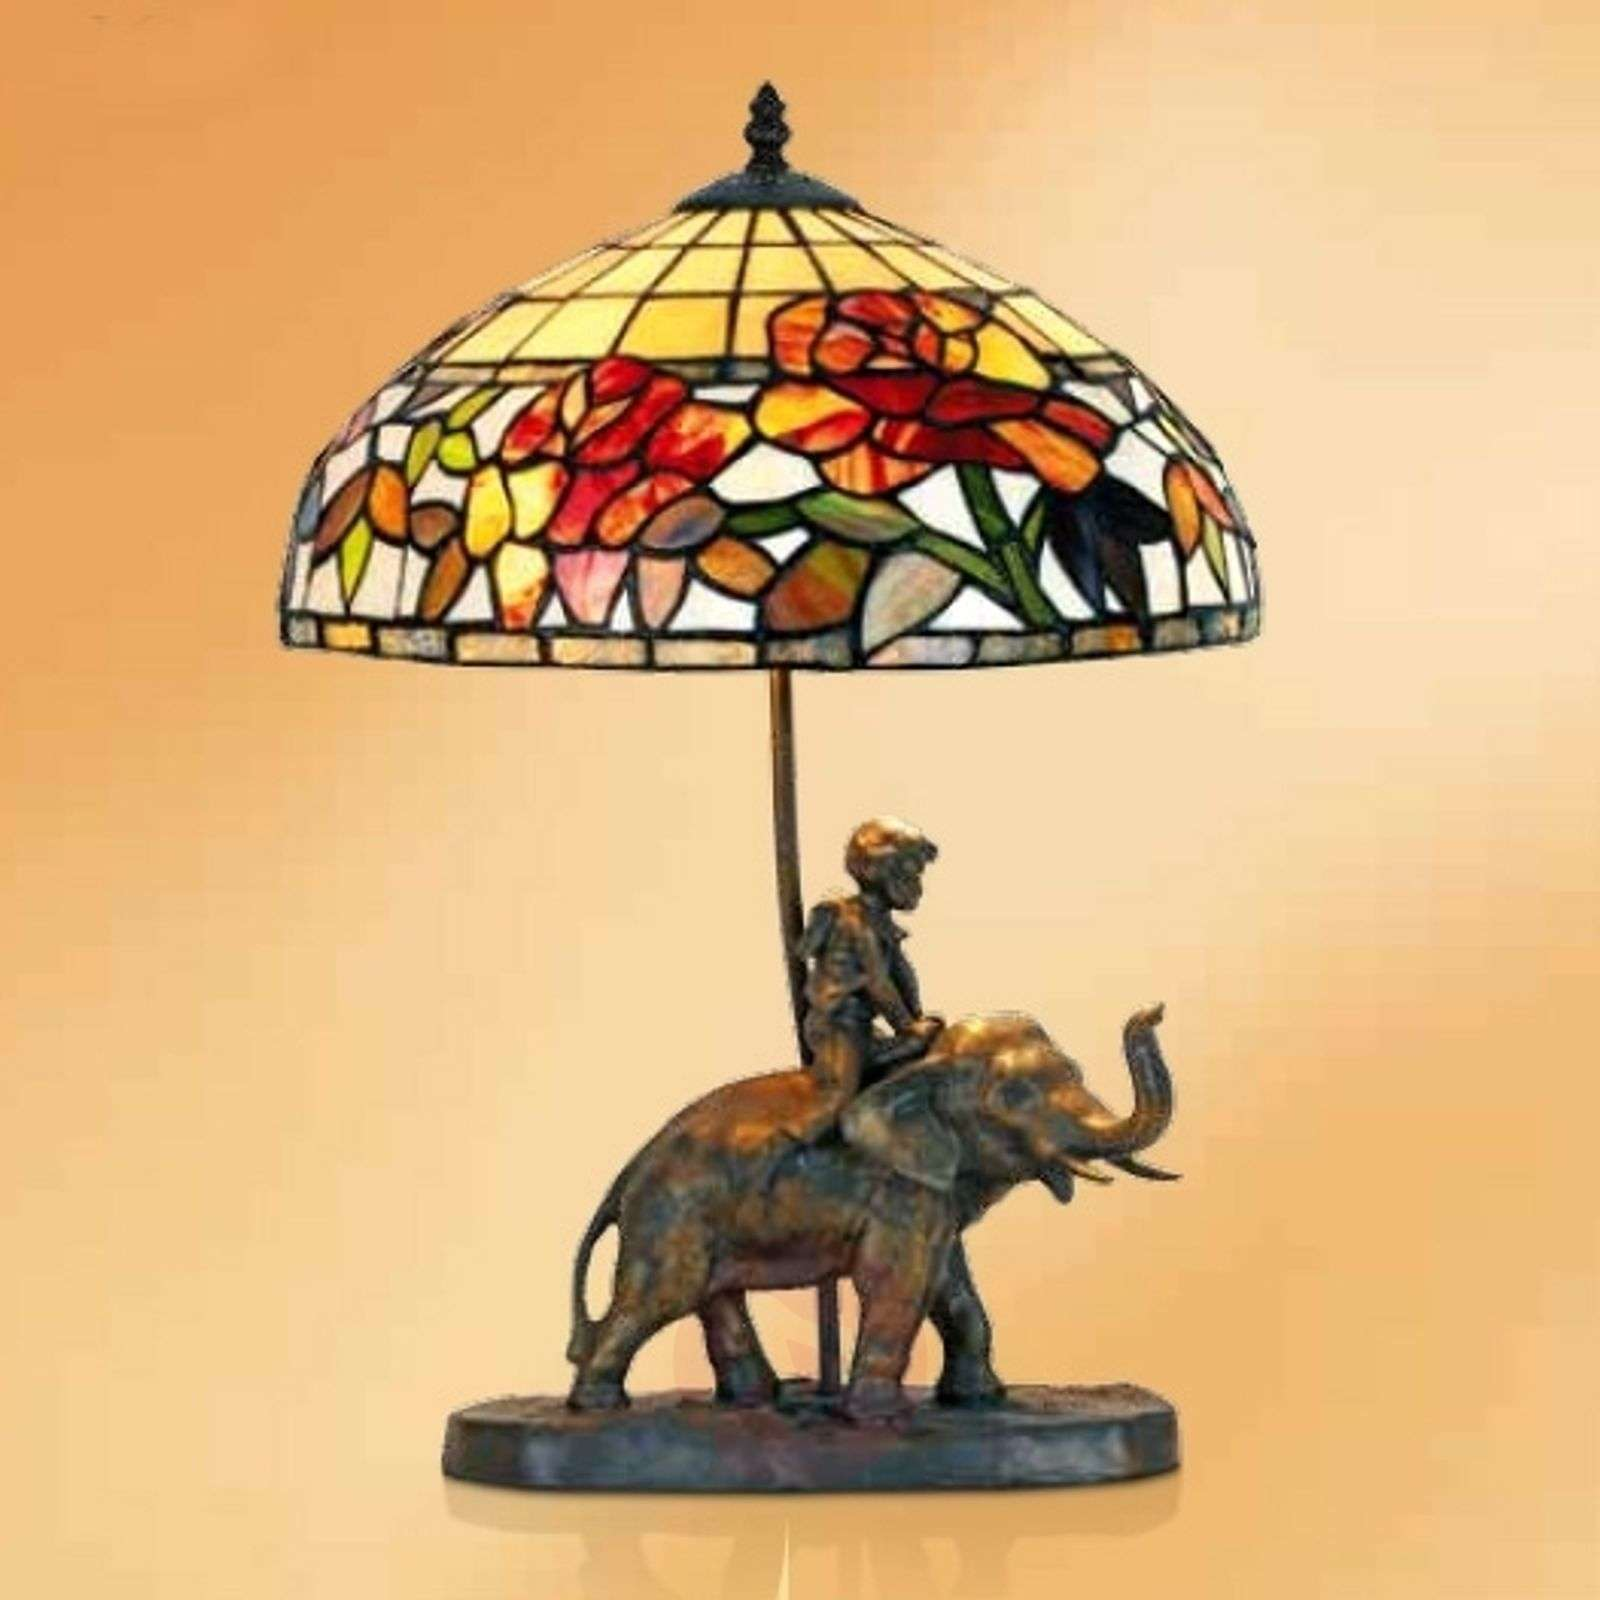 Decorative table lamp Samira, Tiffany style-1032298-01